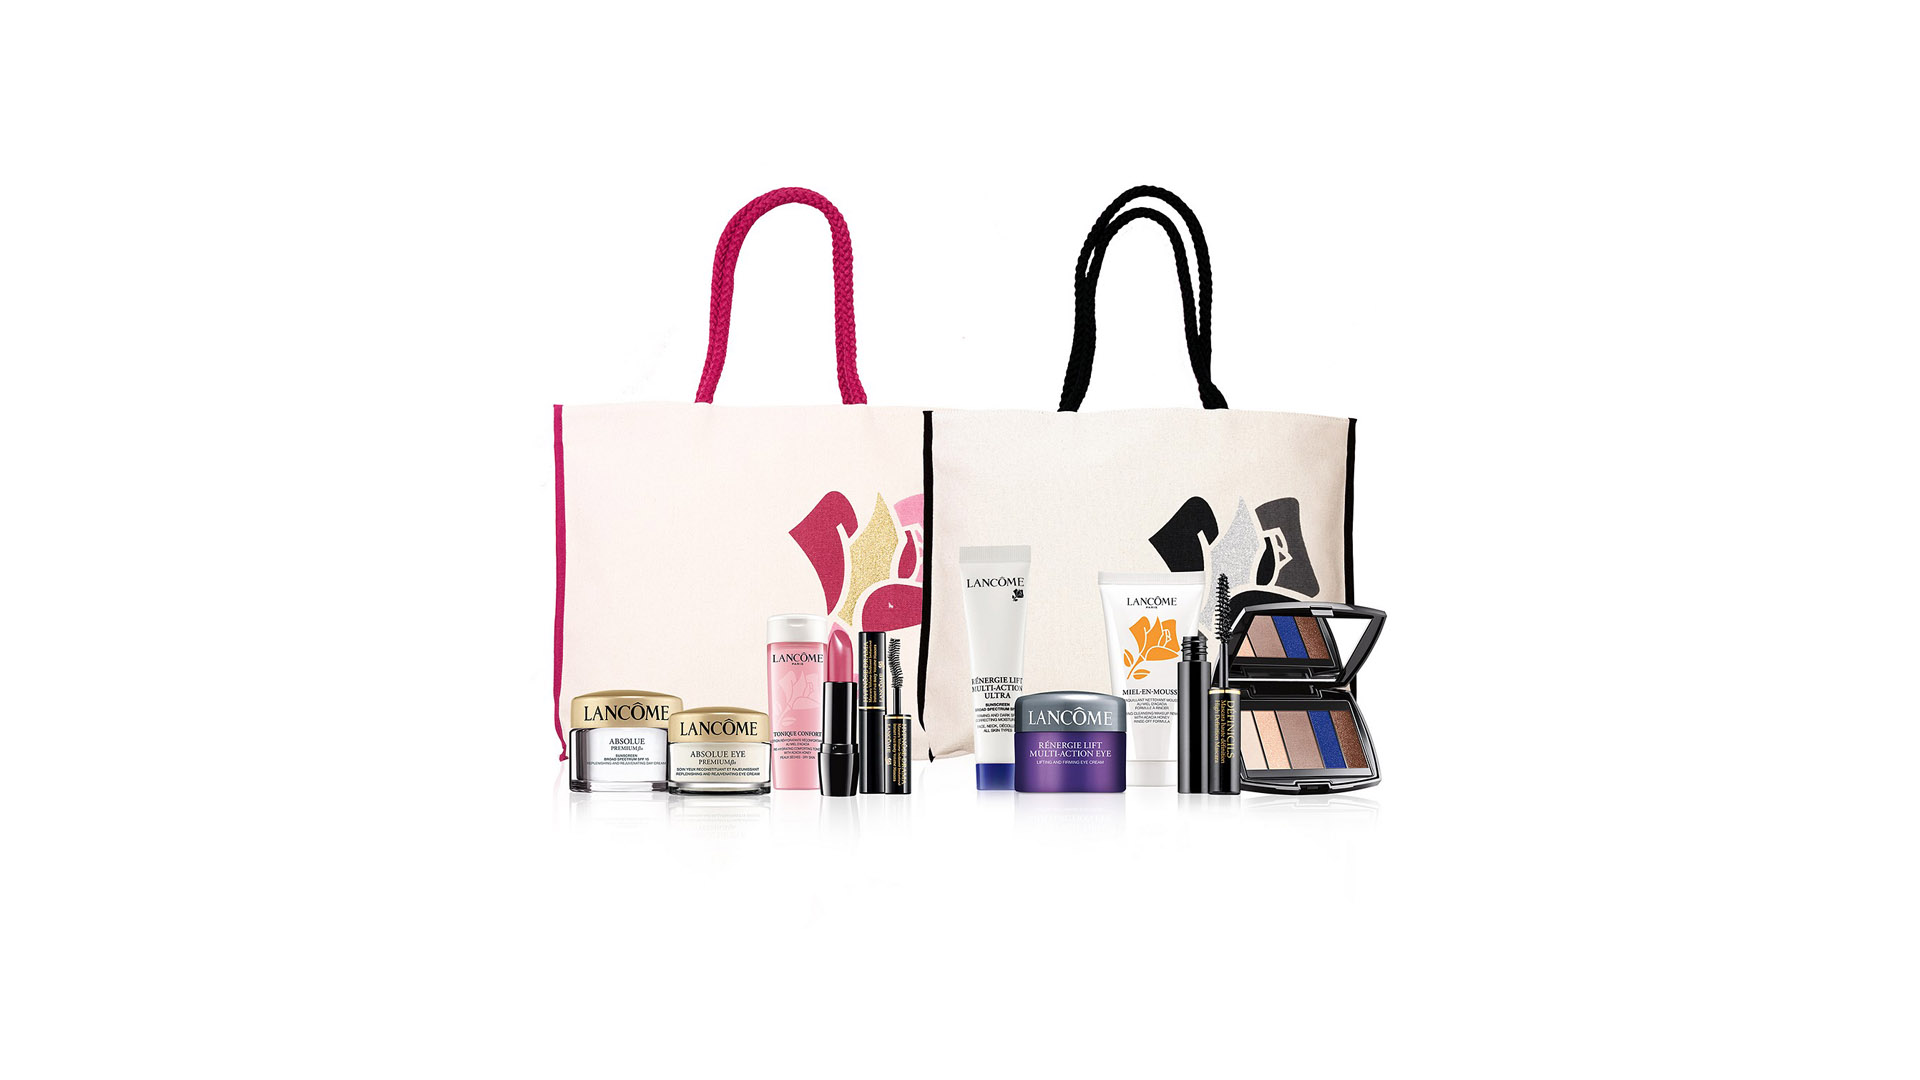 Lâncome 6 Piece Gift Is One Of The Best Macy's Deals To Mother's Day